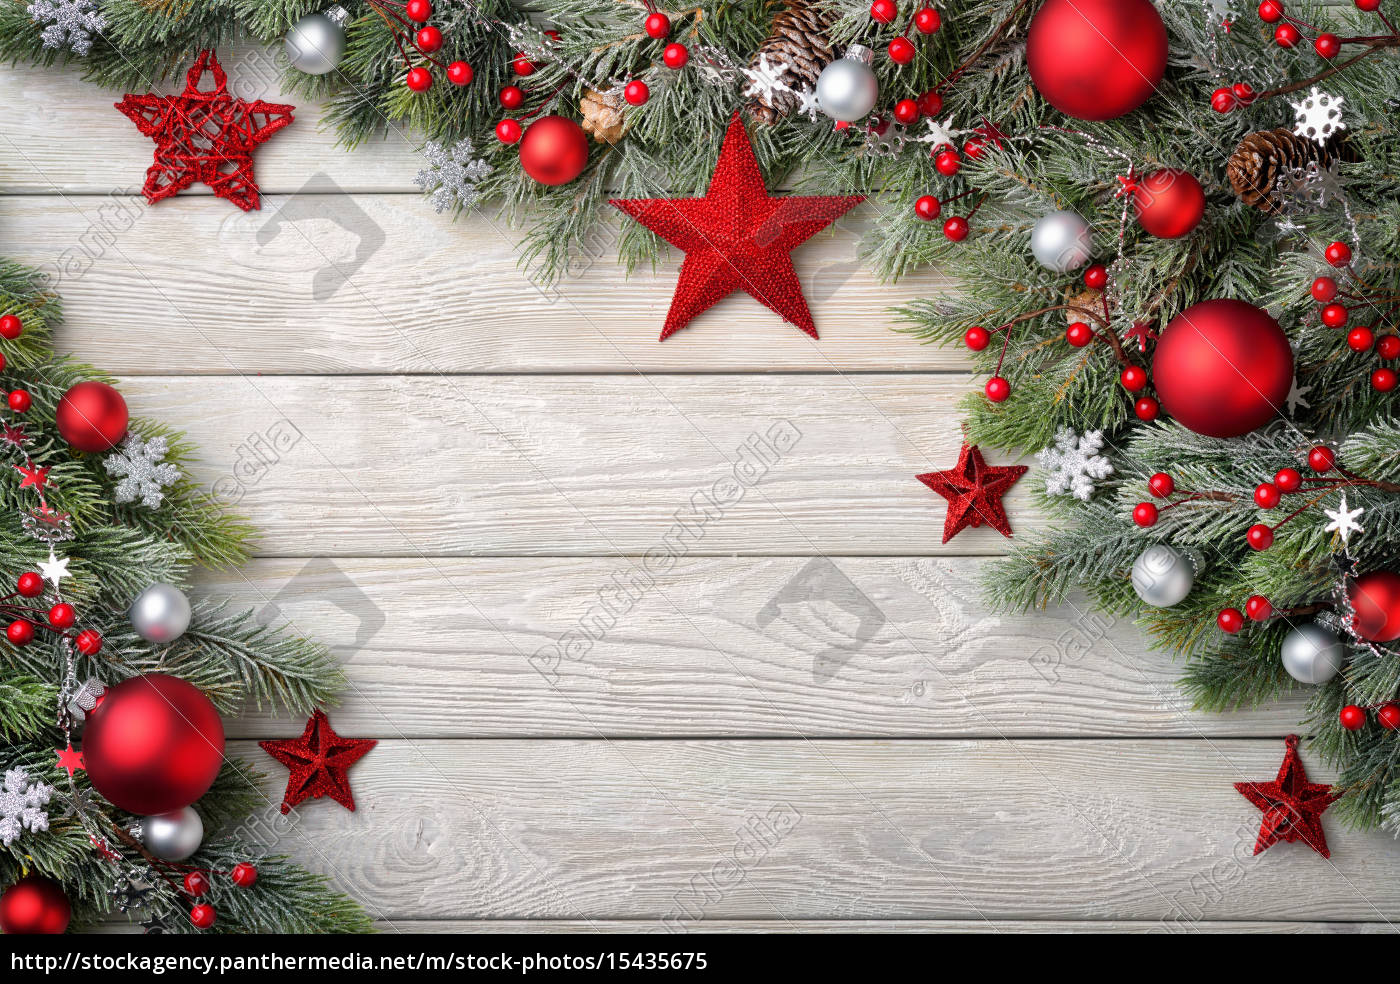 Royalty Free Image 15435675 The Perfect Christmas Background